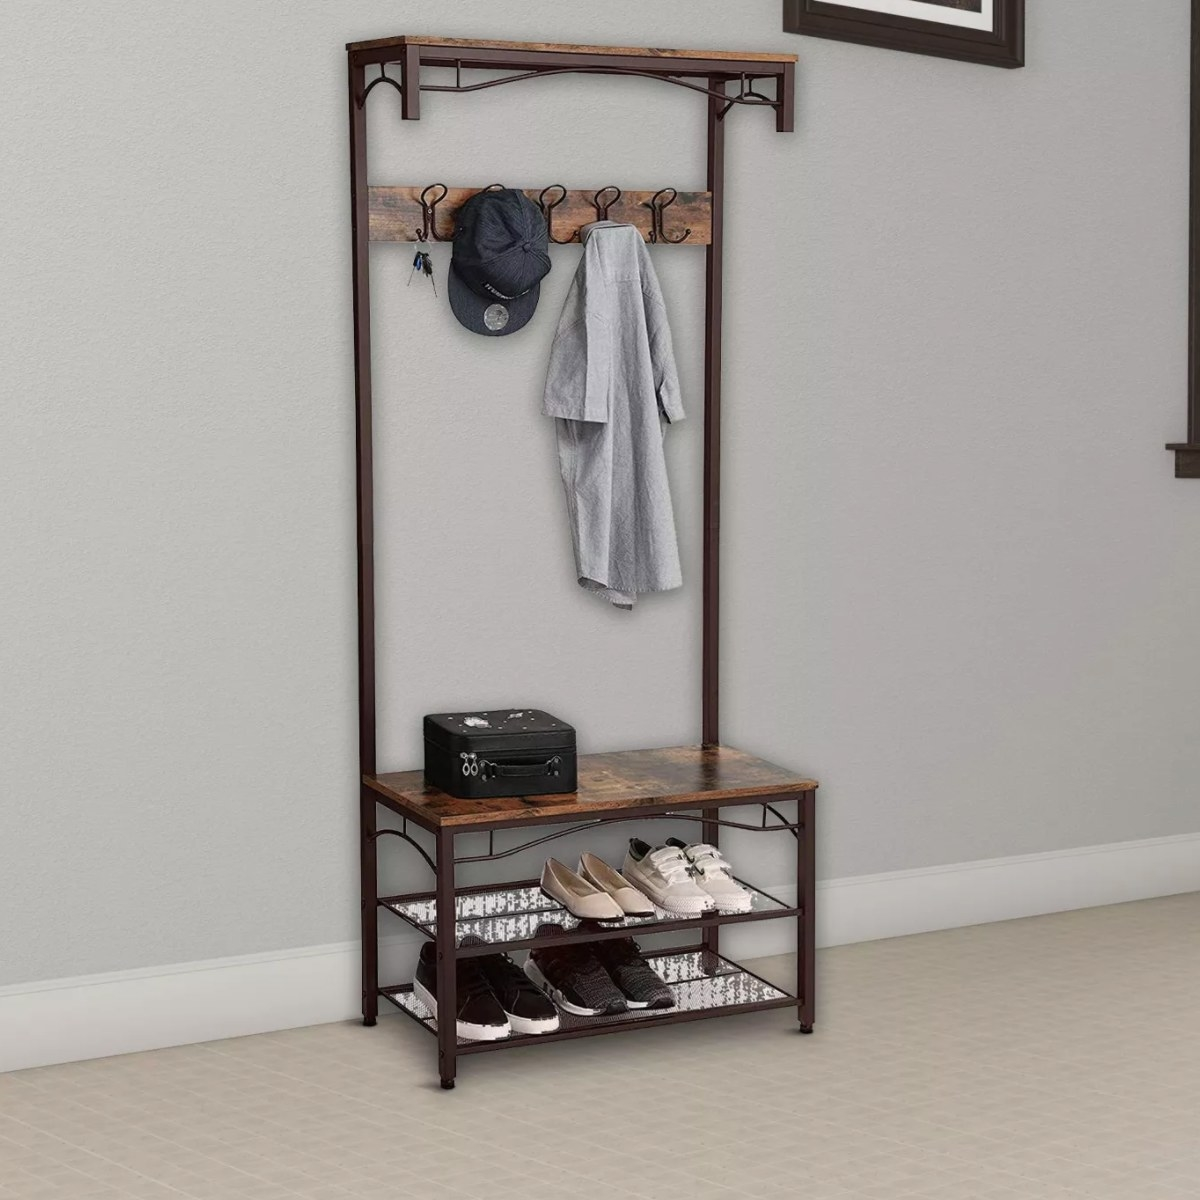 The wood and bronze rack and bench combo